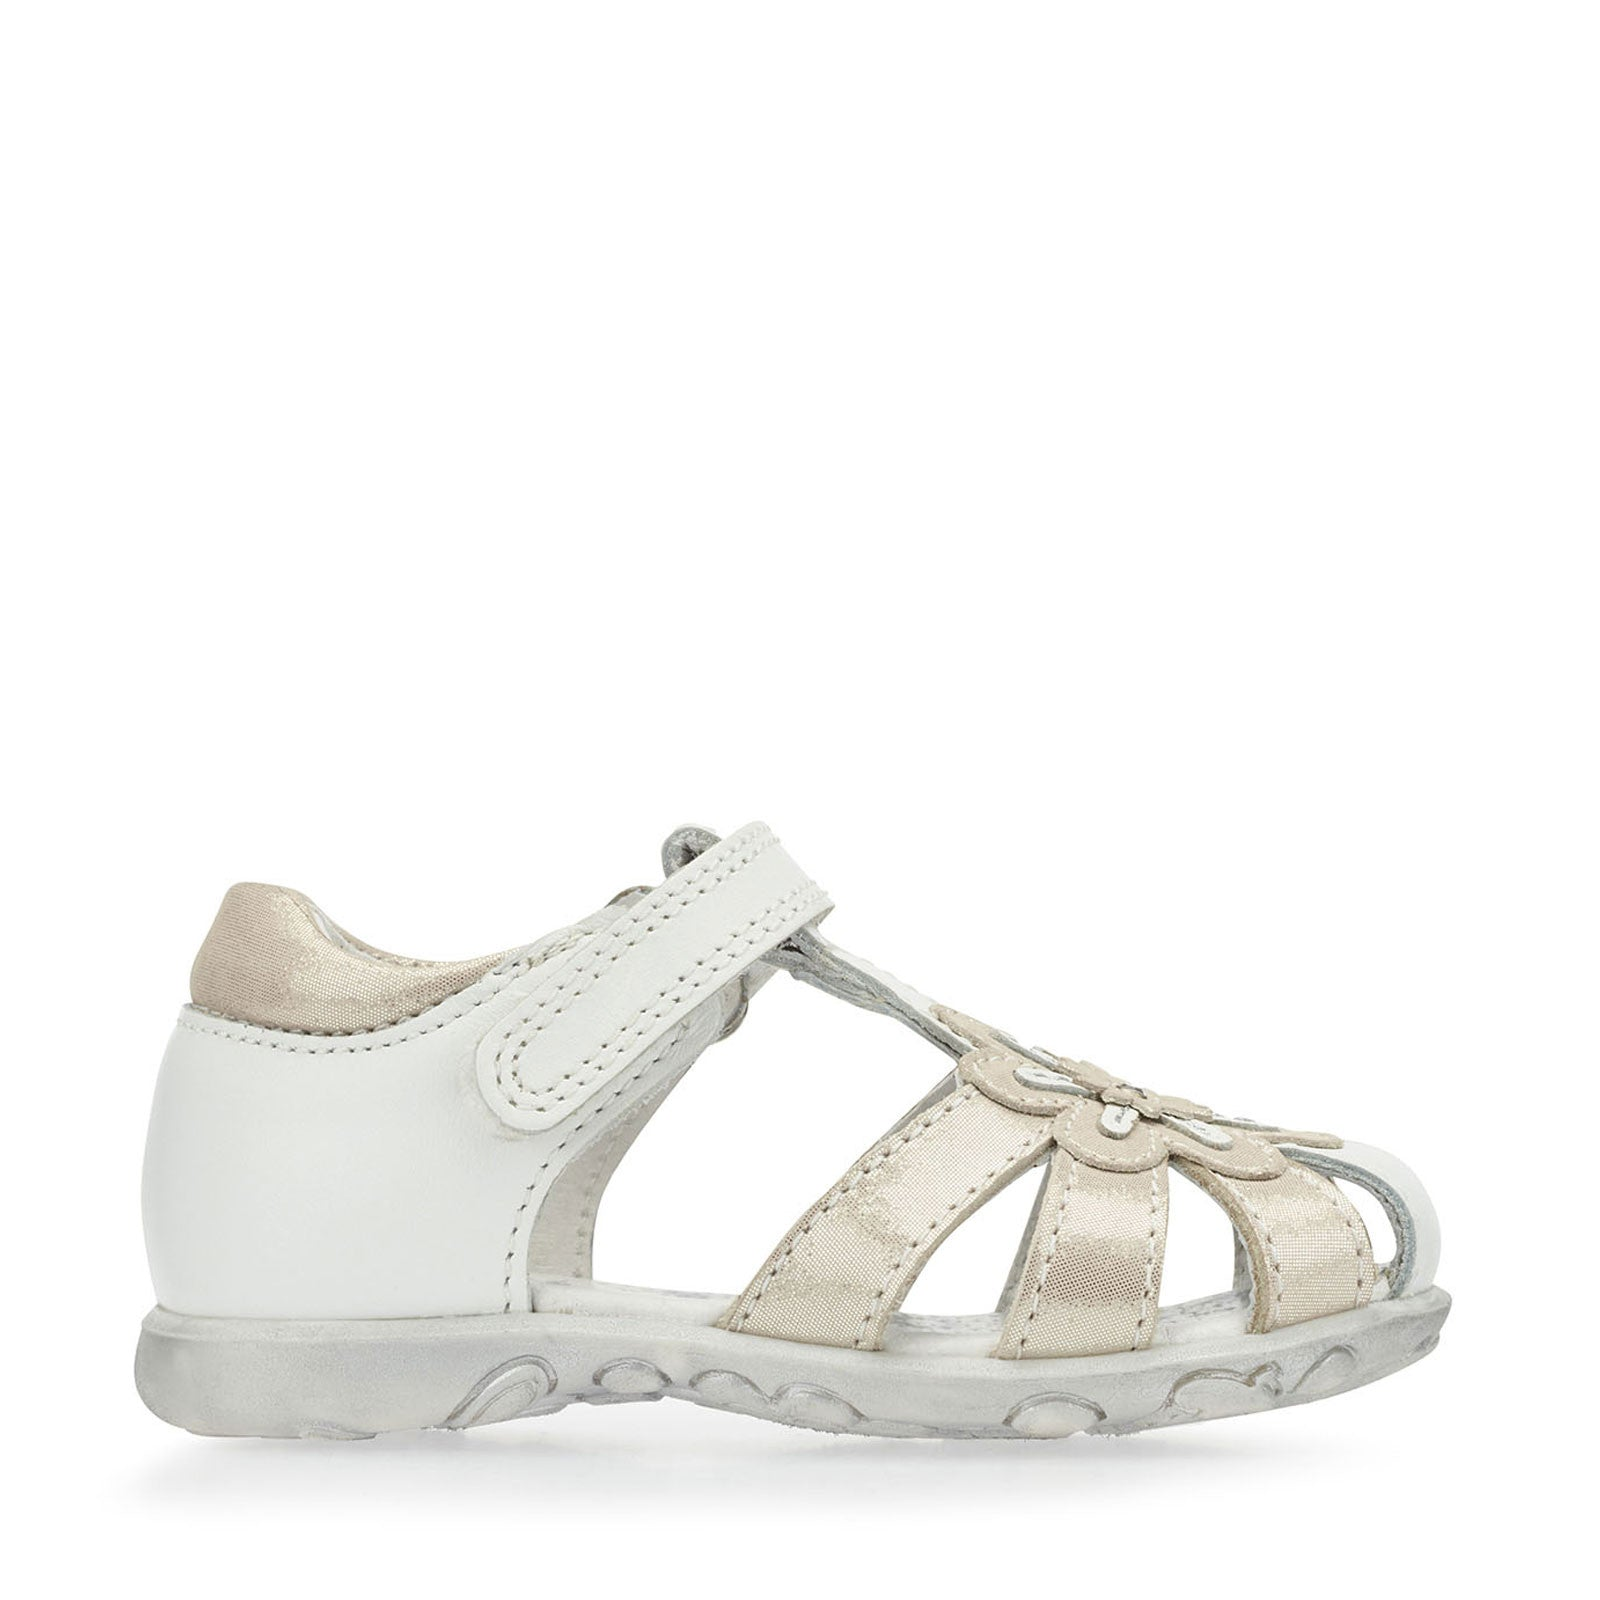 19cce2cb6694d NEW Start Rite Primrose White and Silver Sandals - Geoffrey and Joy